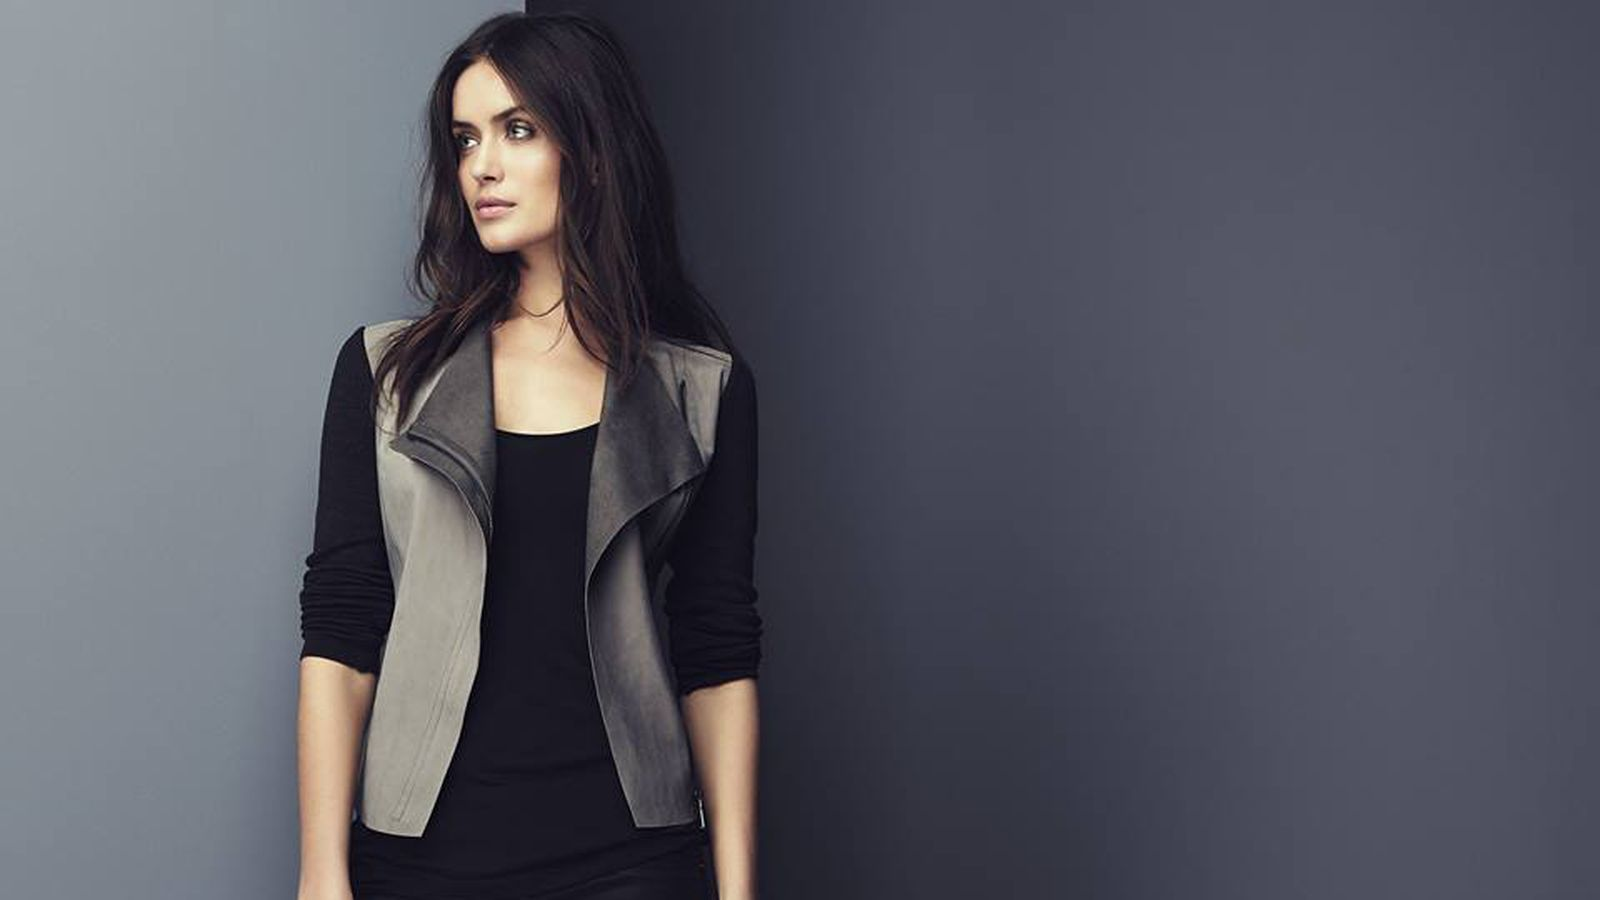 The Elie Tahari Sample Sale Returns in Less Than Two Weeks - Racked NY